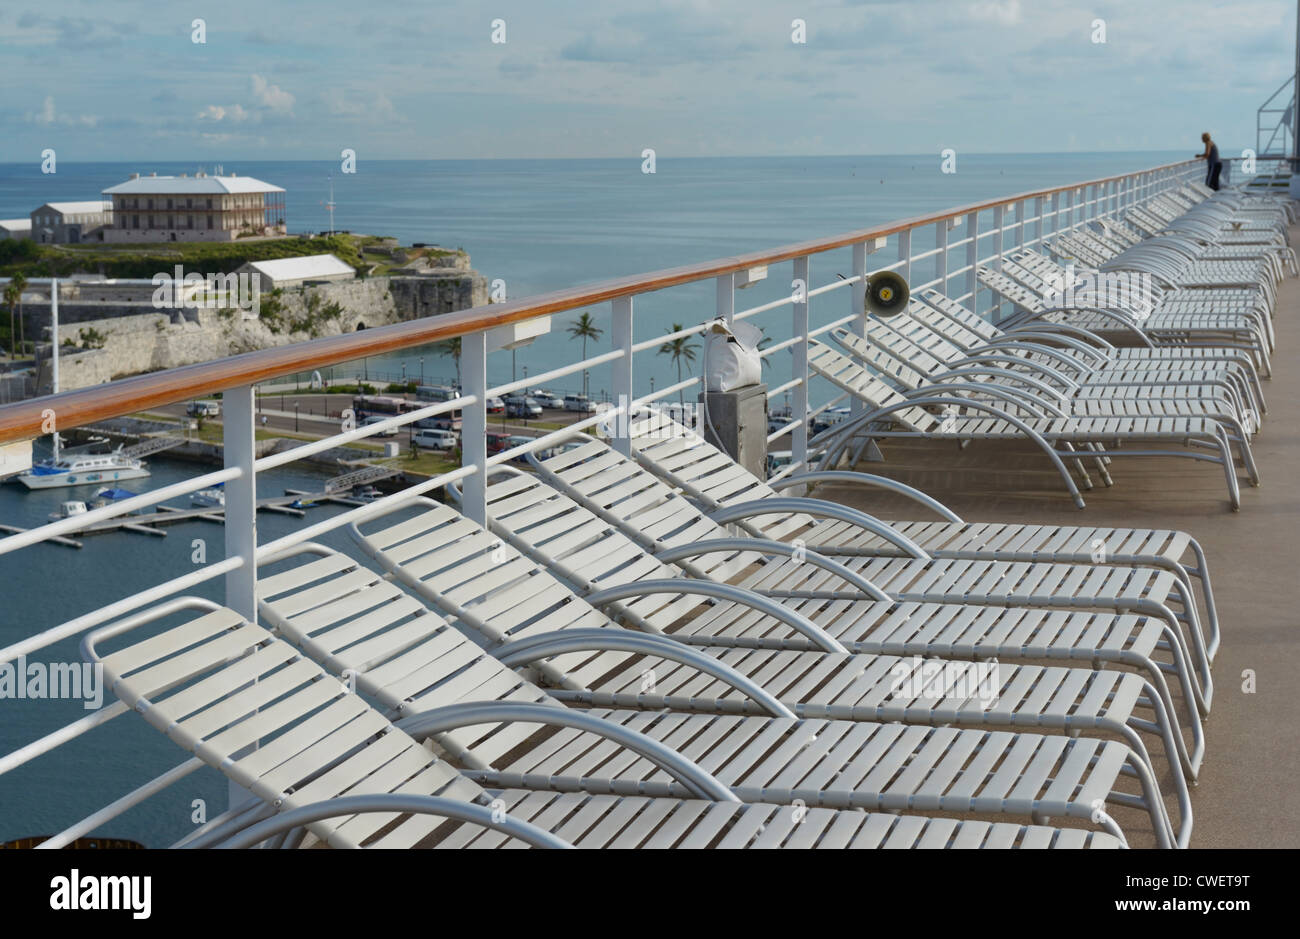 Empty cruise ship deck chairs, King's Wharf Bermuda, The Commissioner's House in view - Stock Image